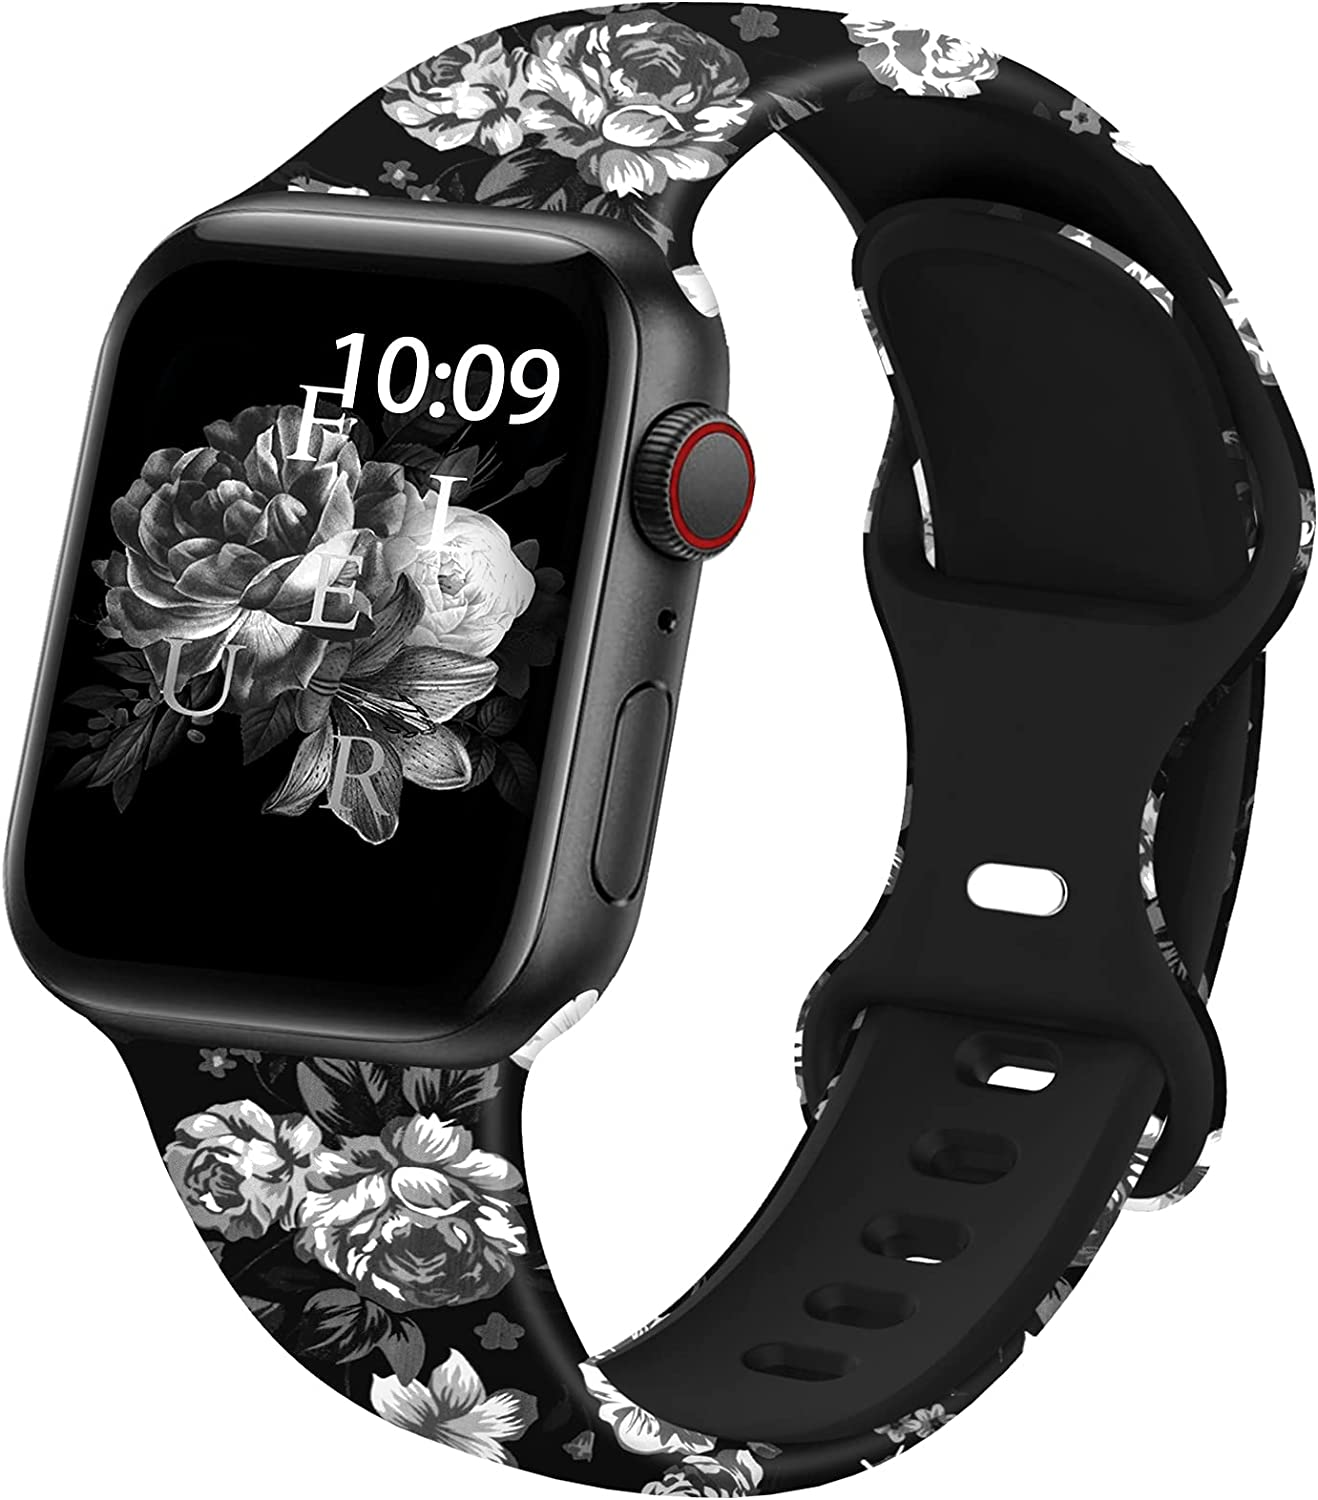 moencase Sport Band Compatible with Apple Watch Bands 38mm 40mm 42mm 44mm for Women Men, Floral Printed Fadeless Pattern Silicone Replacement Strap Band for iwatch SE/Series 6/5/4/3/2/1